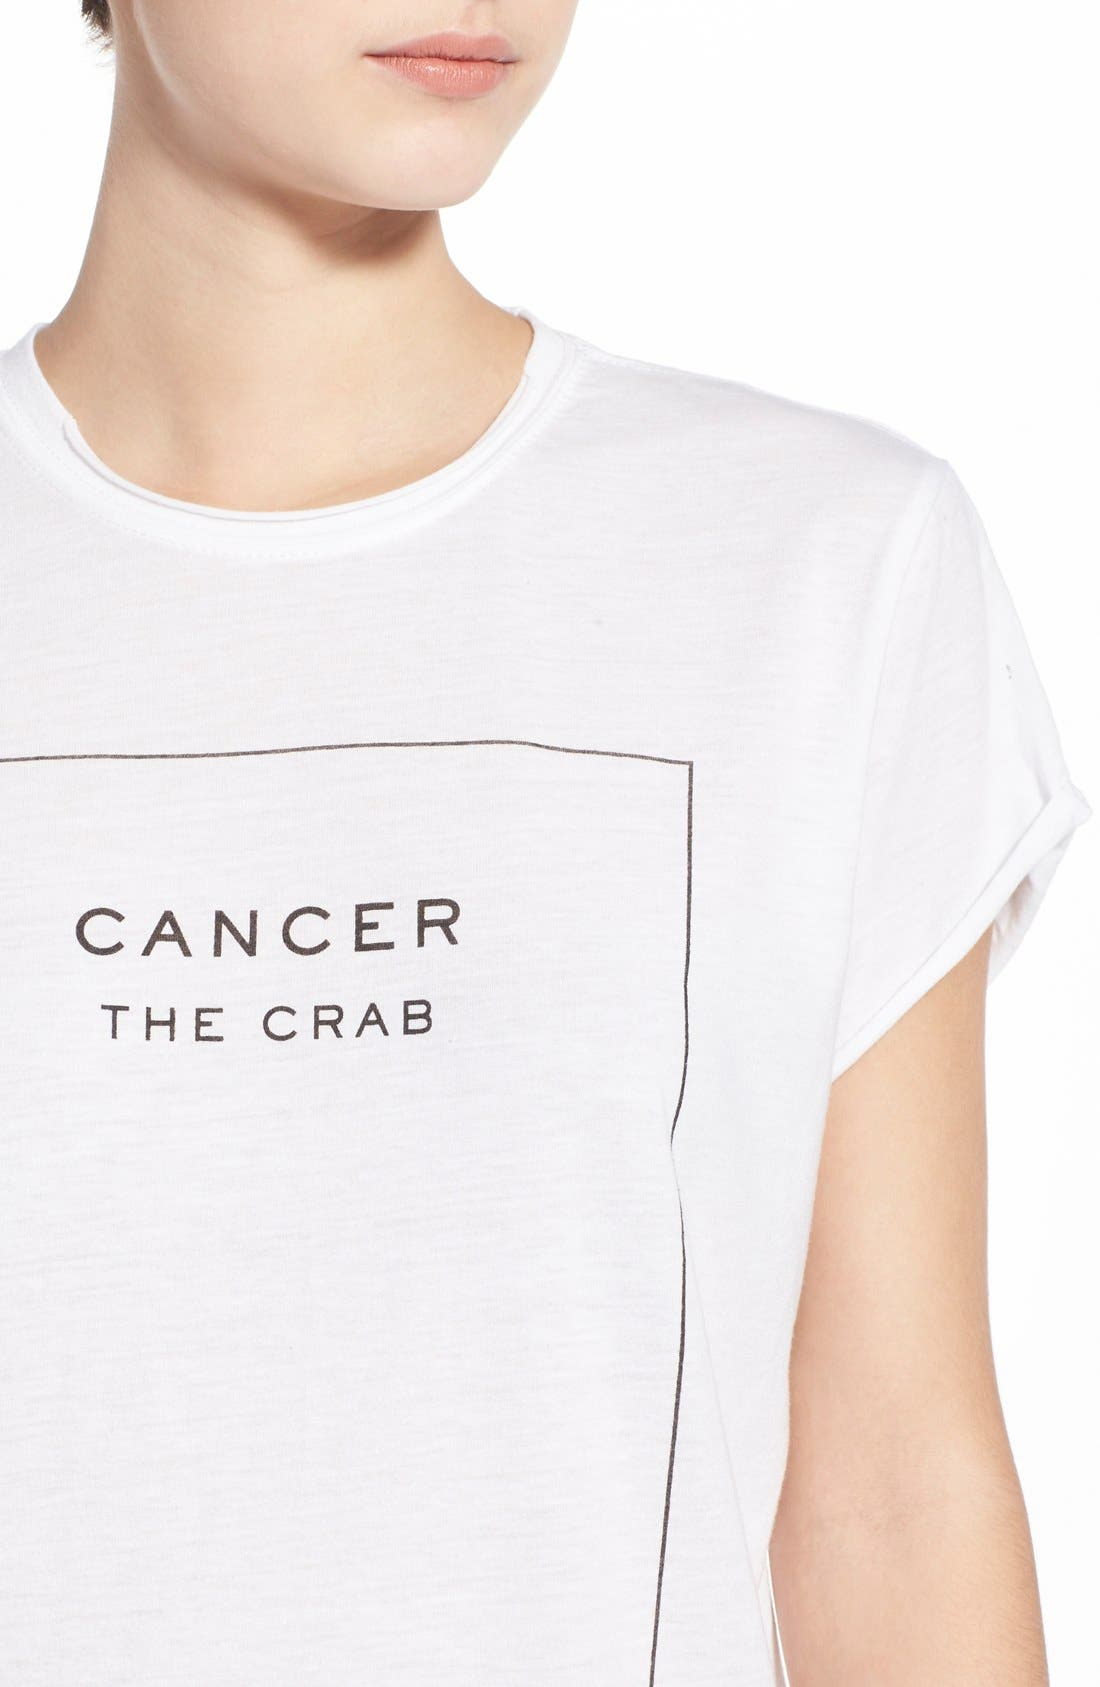 'Cancer' Tee,                             Alternate thumbnail 4, color,                             100